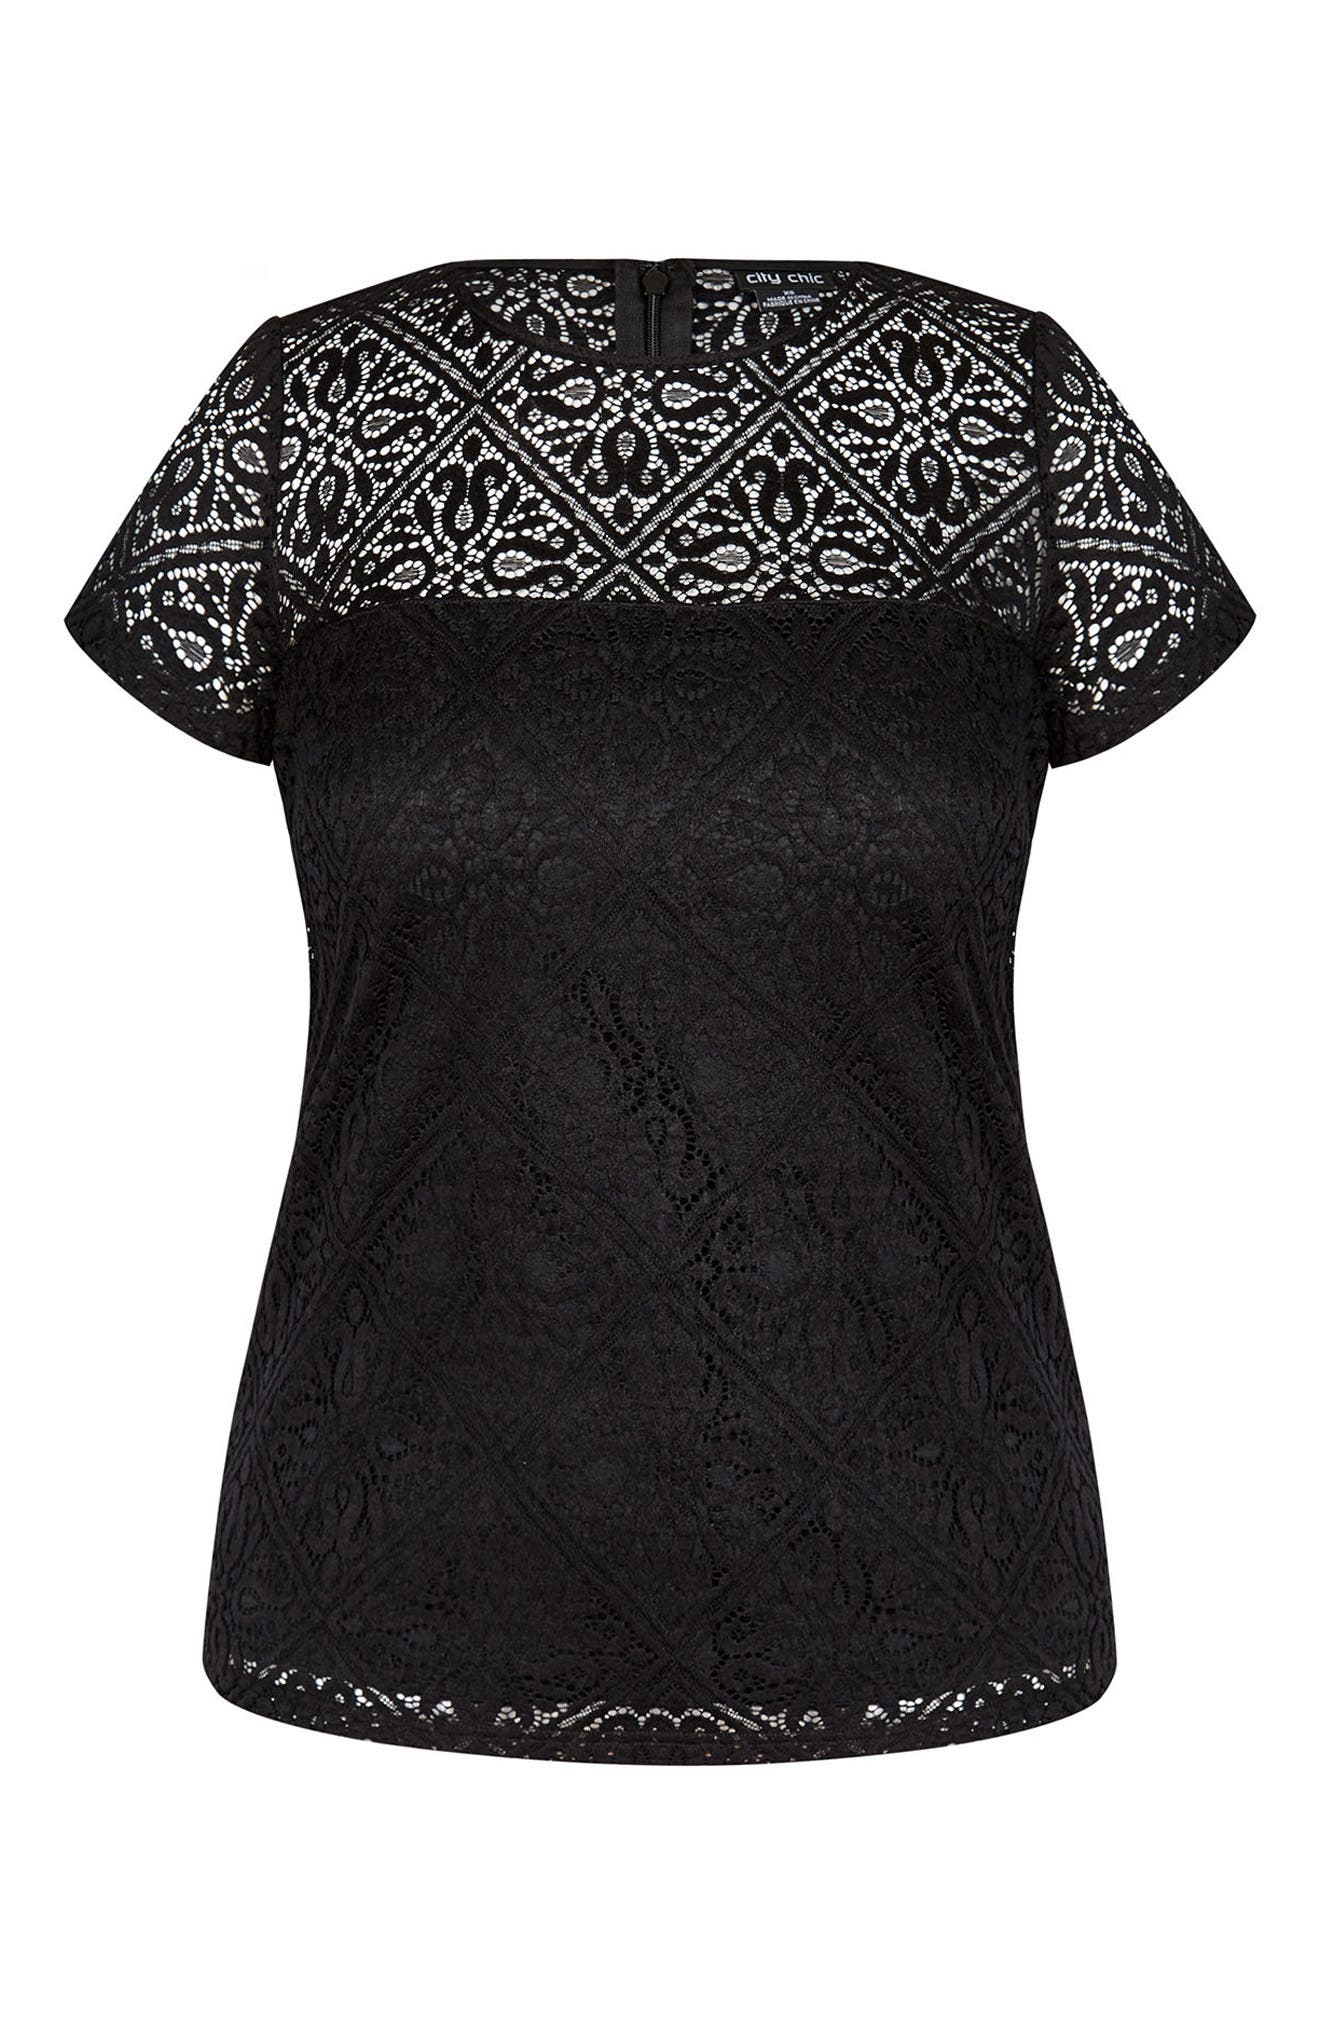 City Chic Magical Feeling Top (Plus Size)